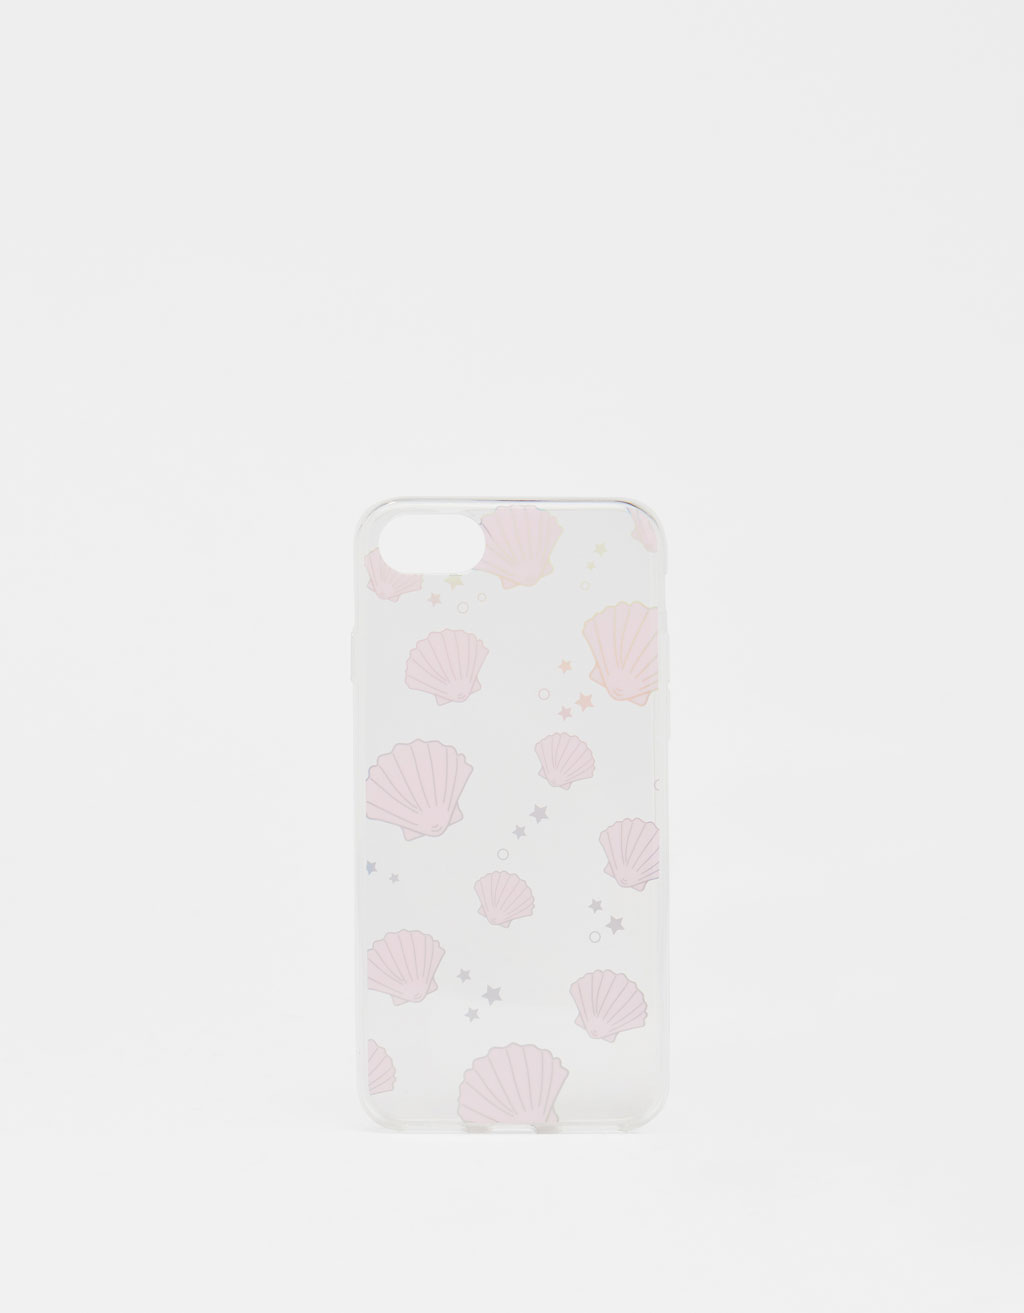 Seashell print iPhone 6 / 6S / 7 / 8 case